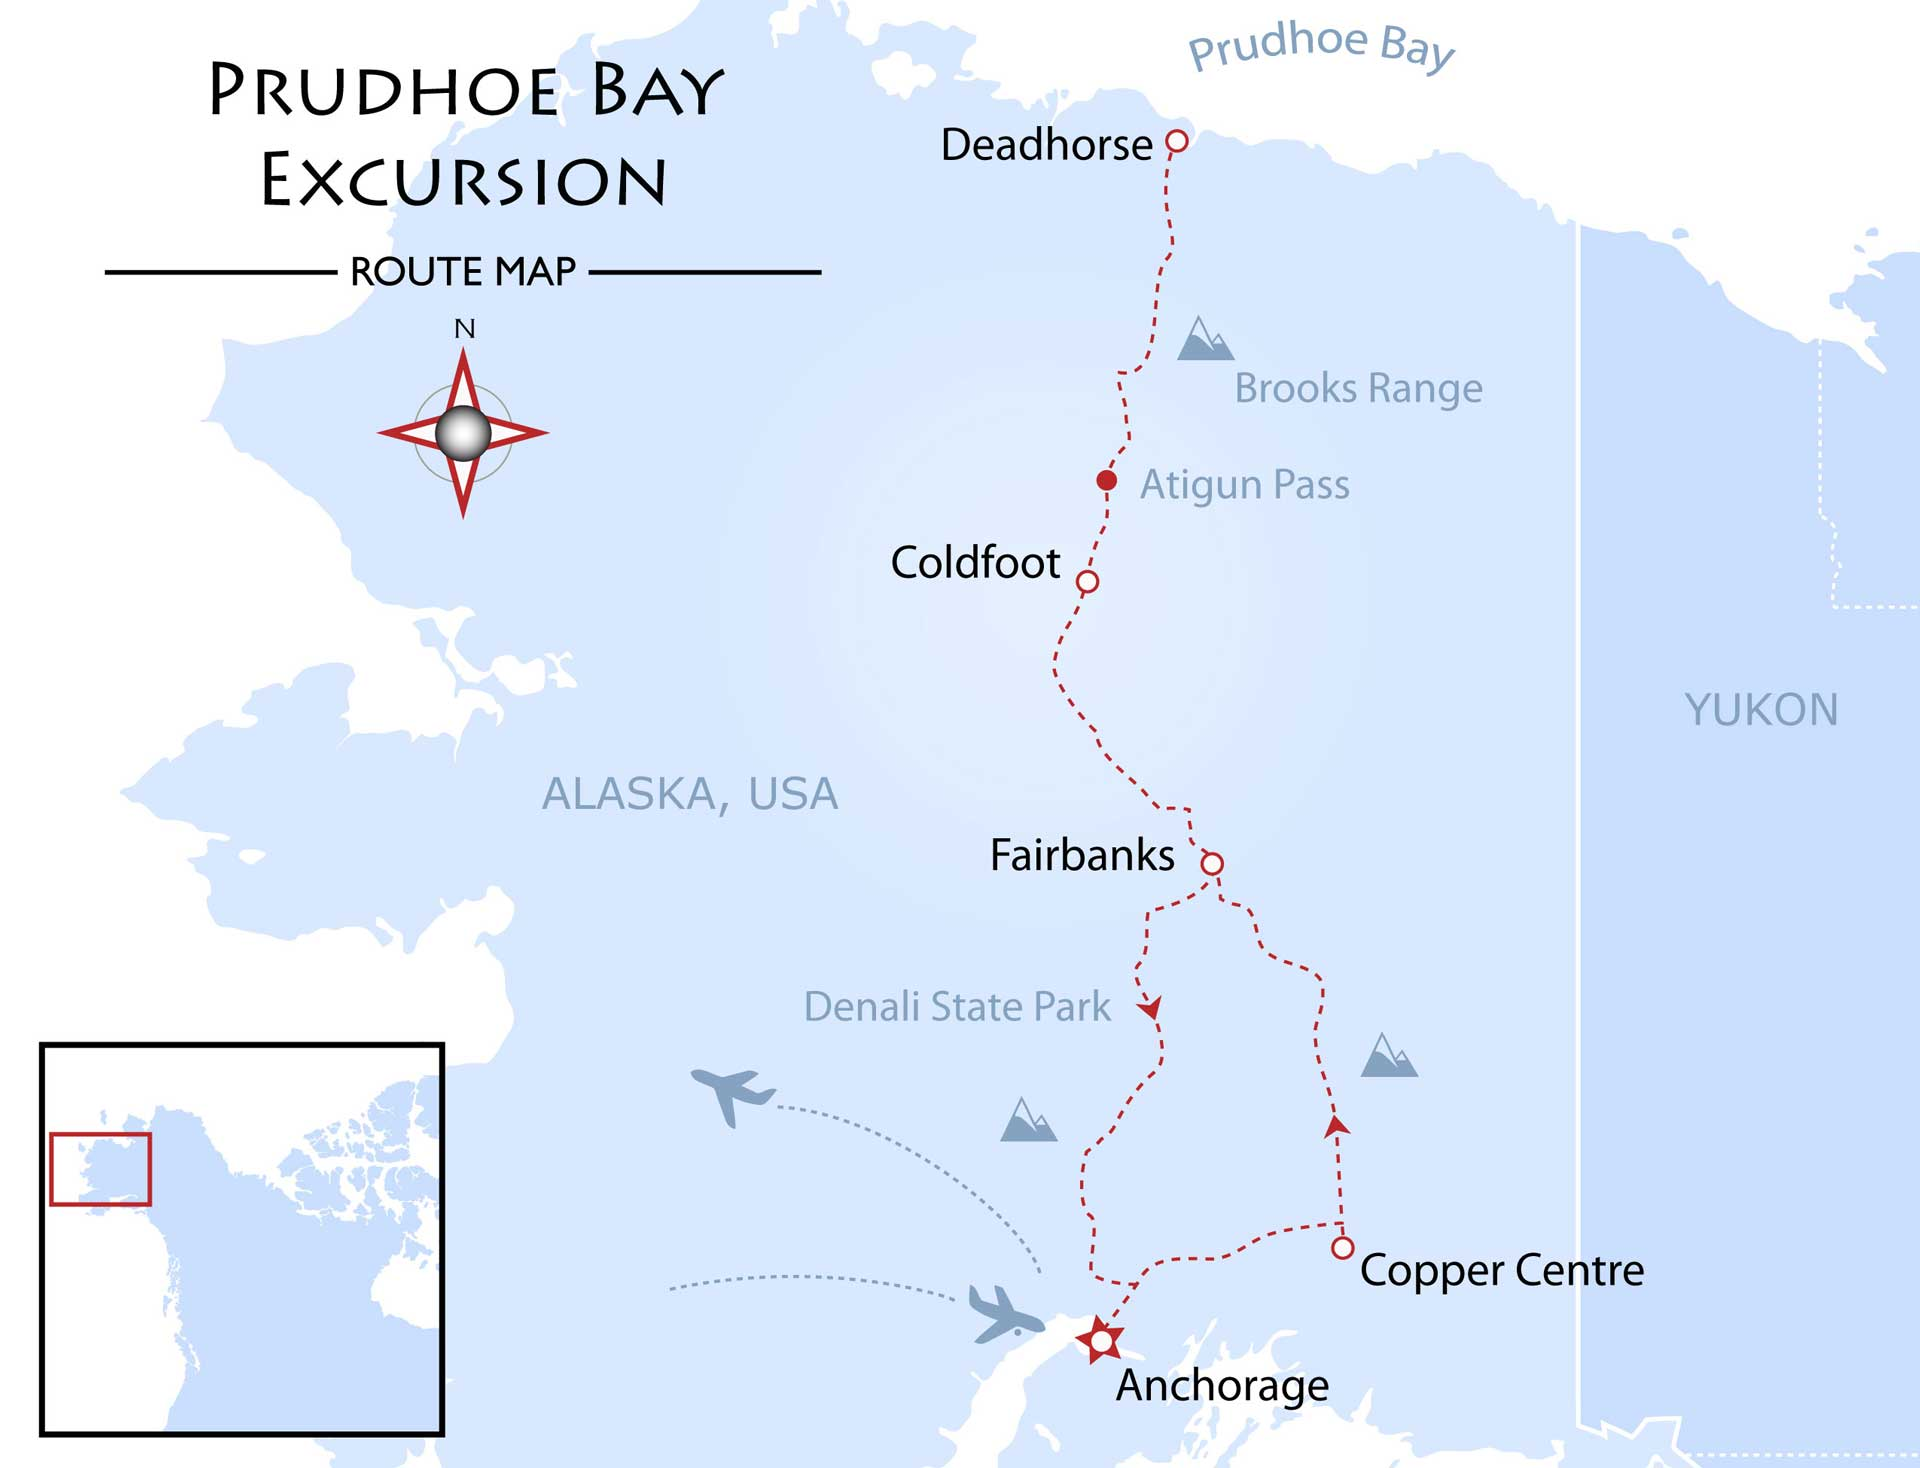 Prudhoe Bay Excursion Map